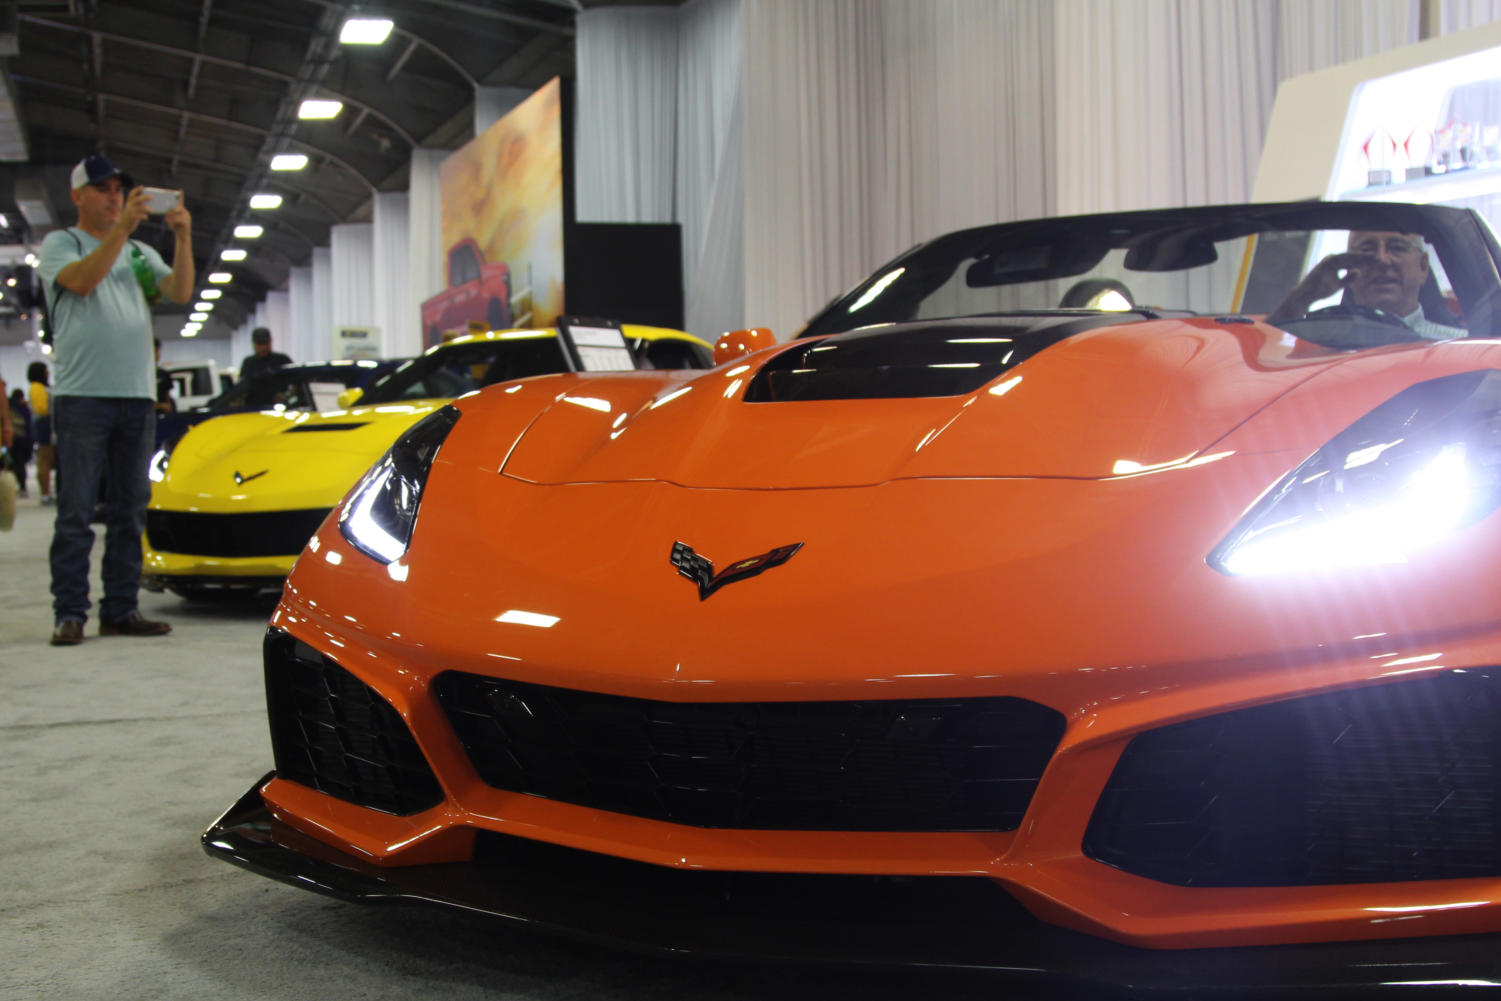 The+2019+Corvette+ZR1+features+magnetic+selective+ride+control+and+a+carbon-fiber+halo+hood.+